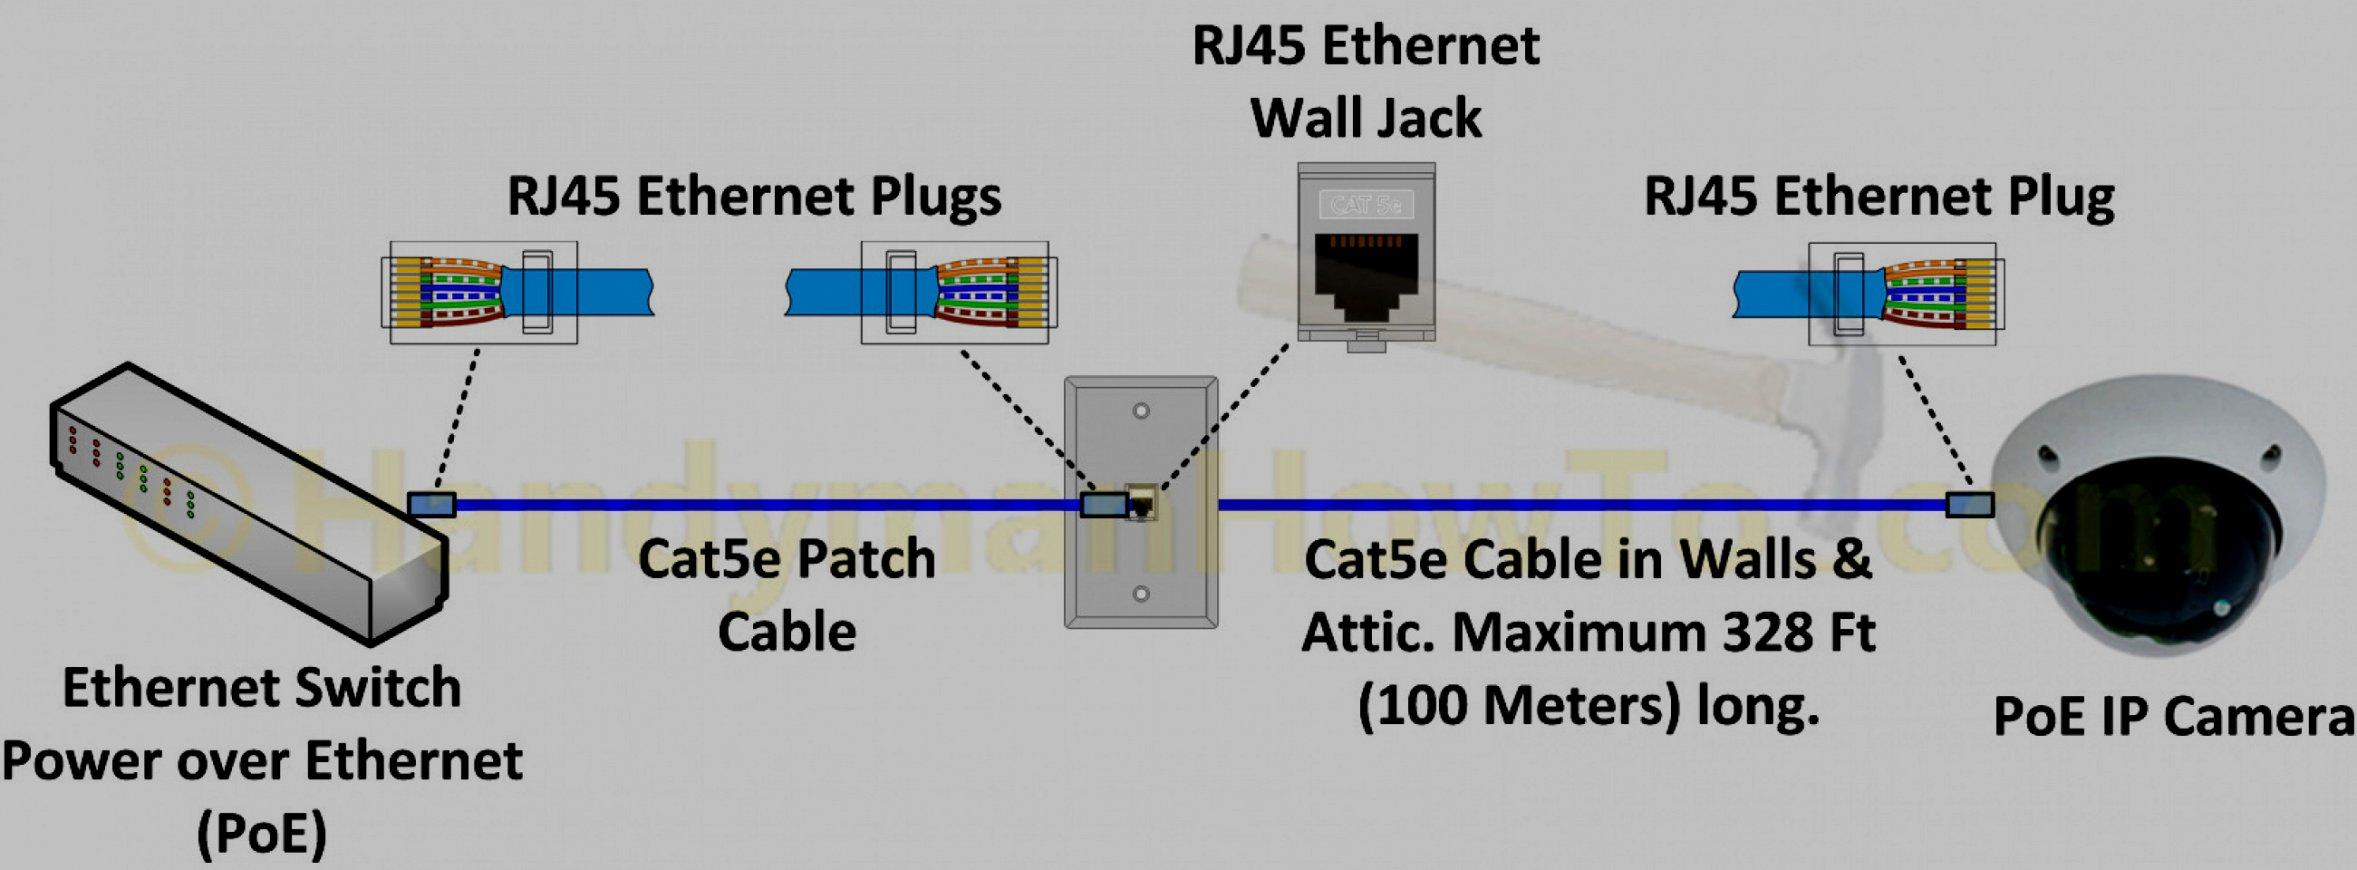 punch wiring diagram wiring diagram Ethernet Cable Wiring Diagram Guide cat 5 pin configuration wiring